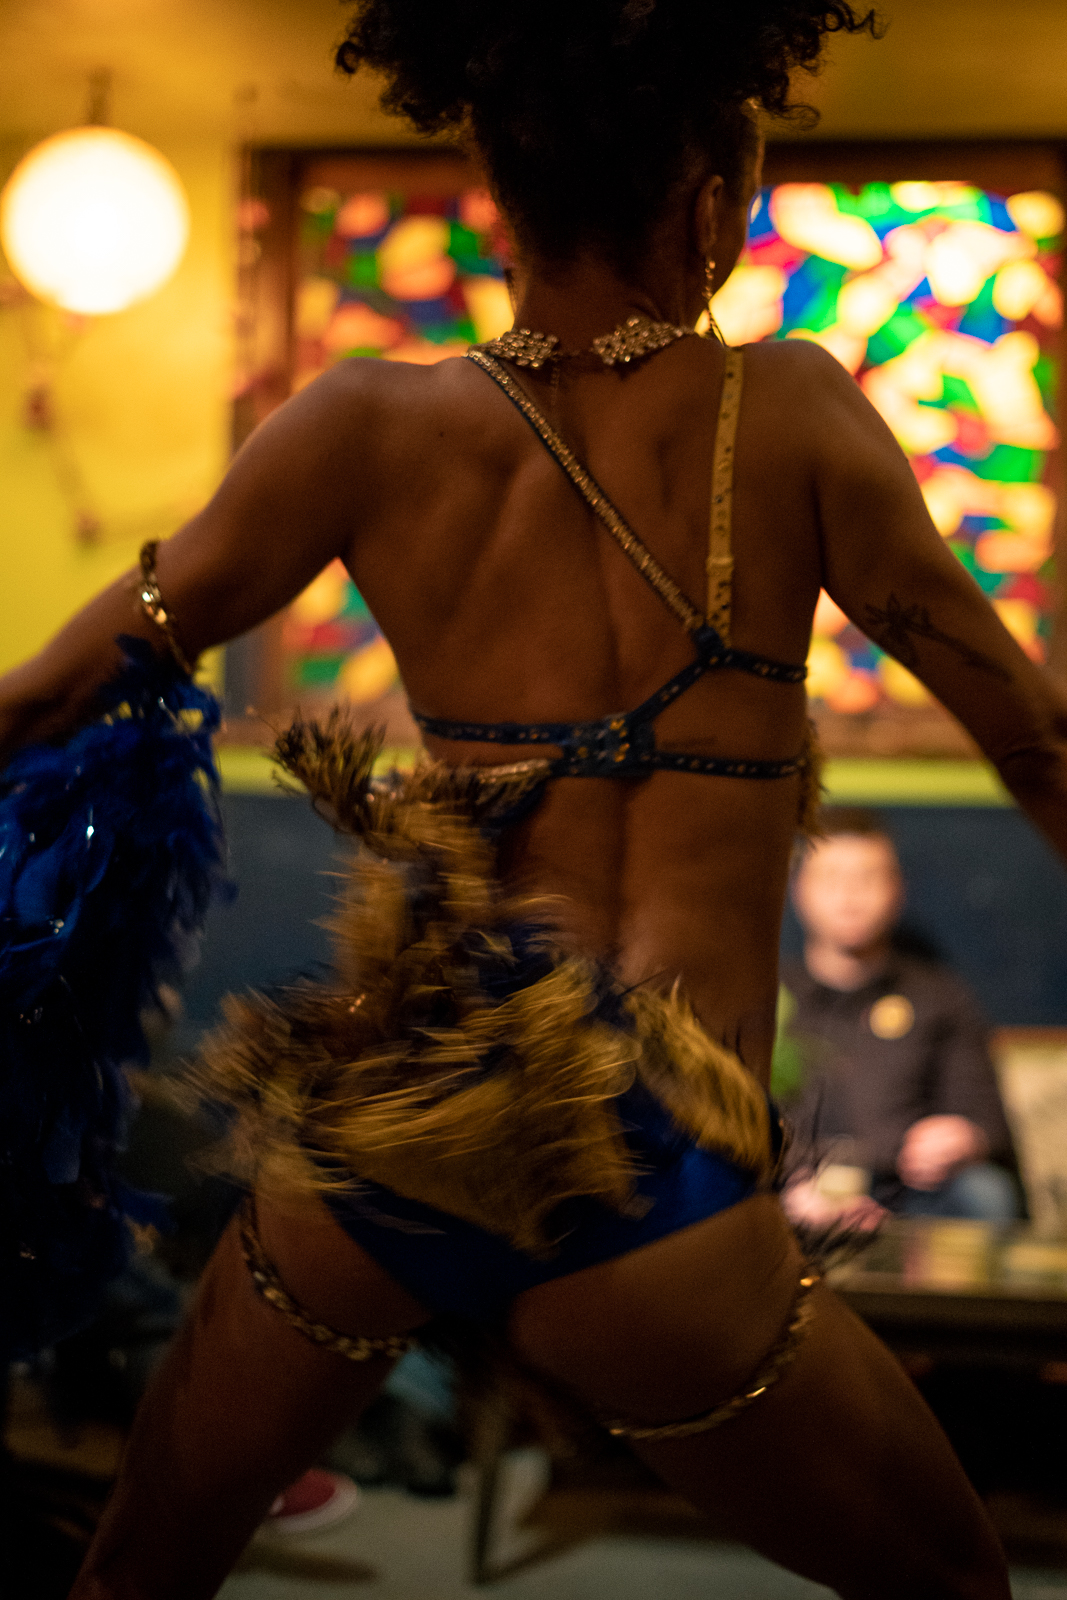 A photo from behind a burlesque dancer as they perform